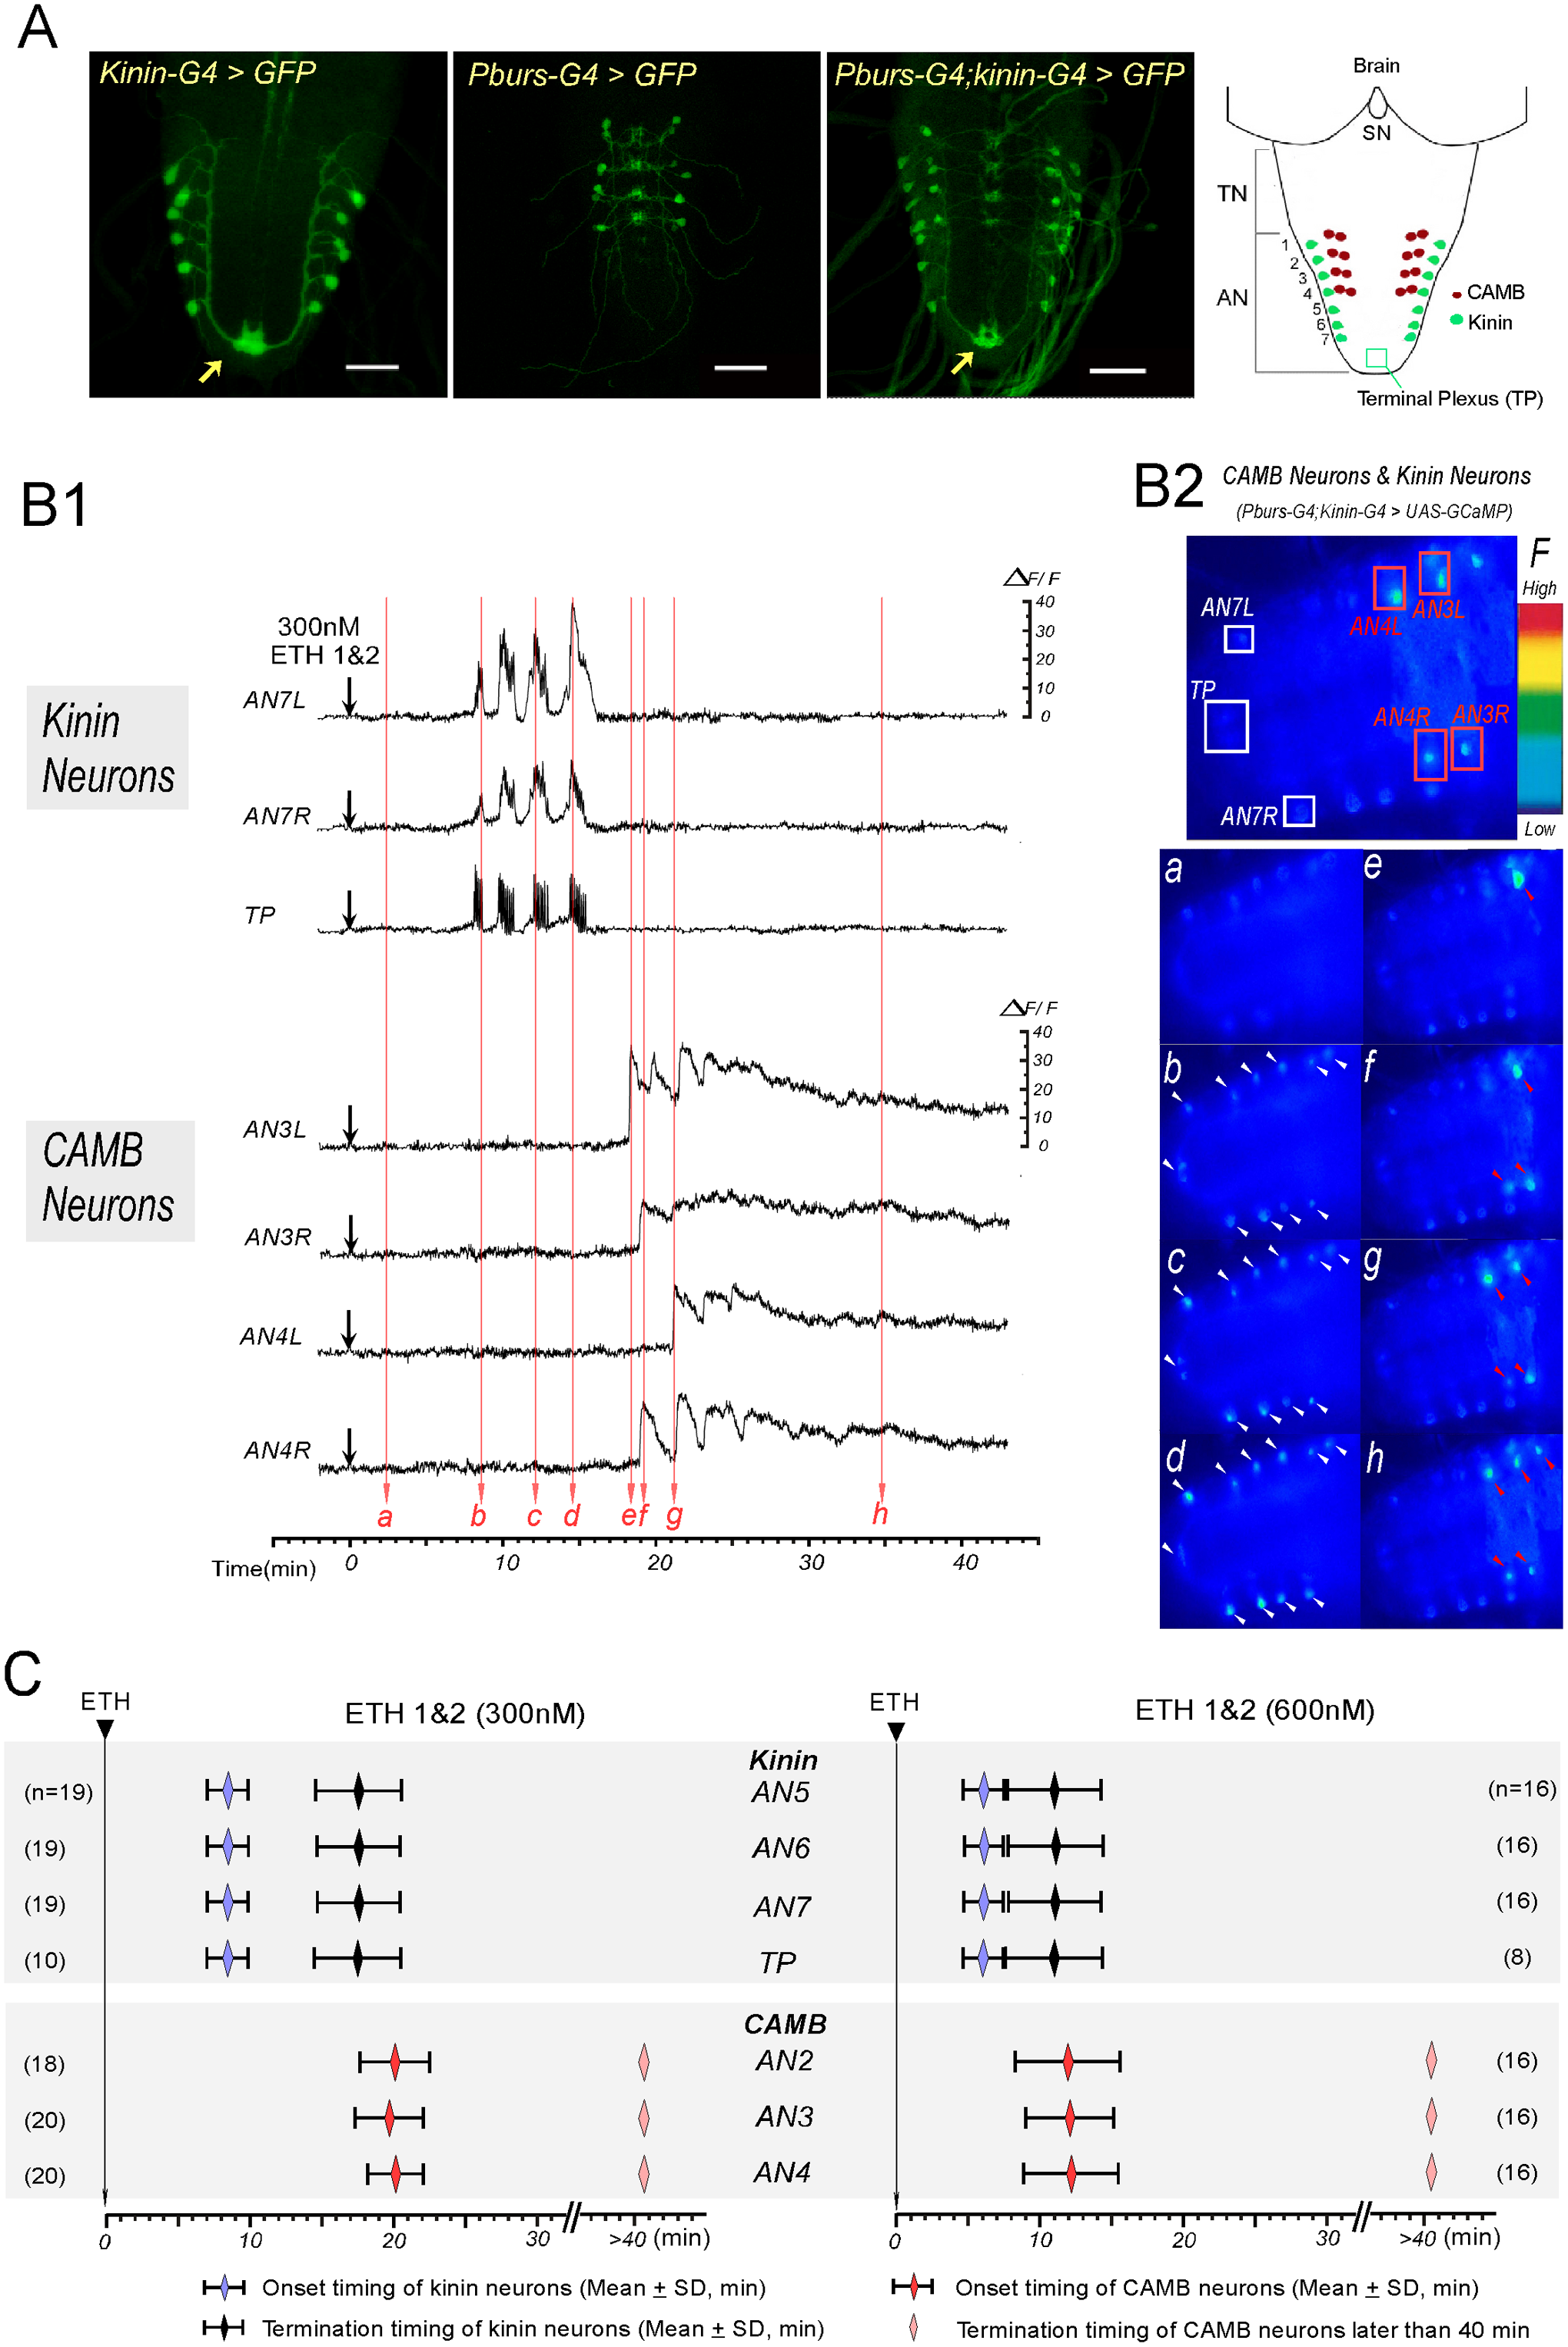 ETH evokes sequential activation of kinin and CAMB neurons.